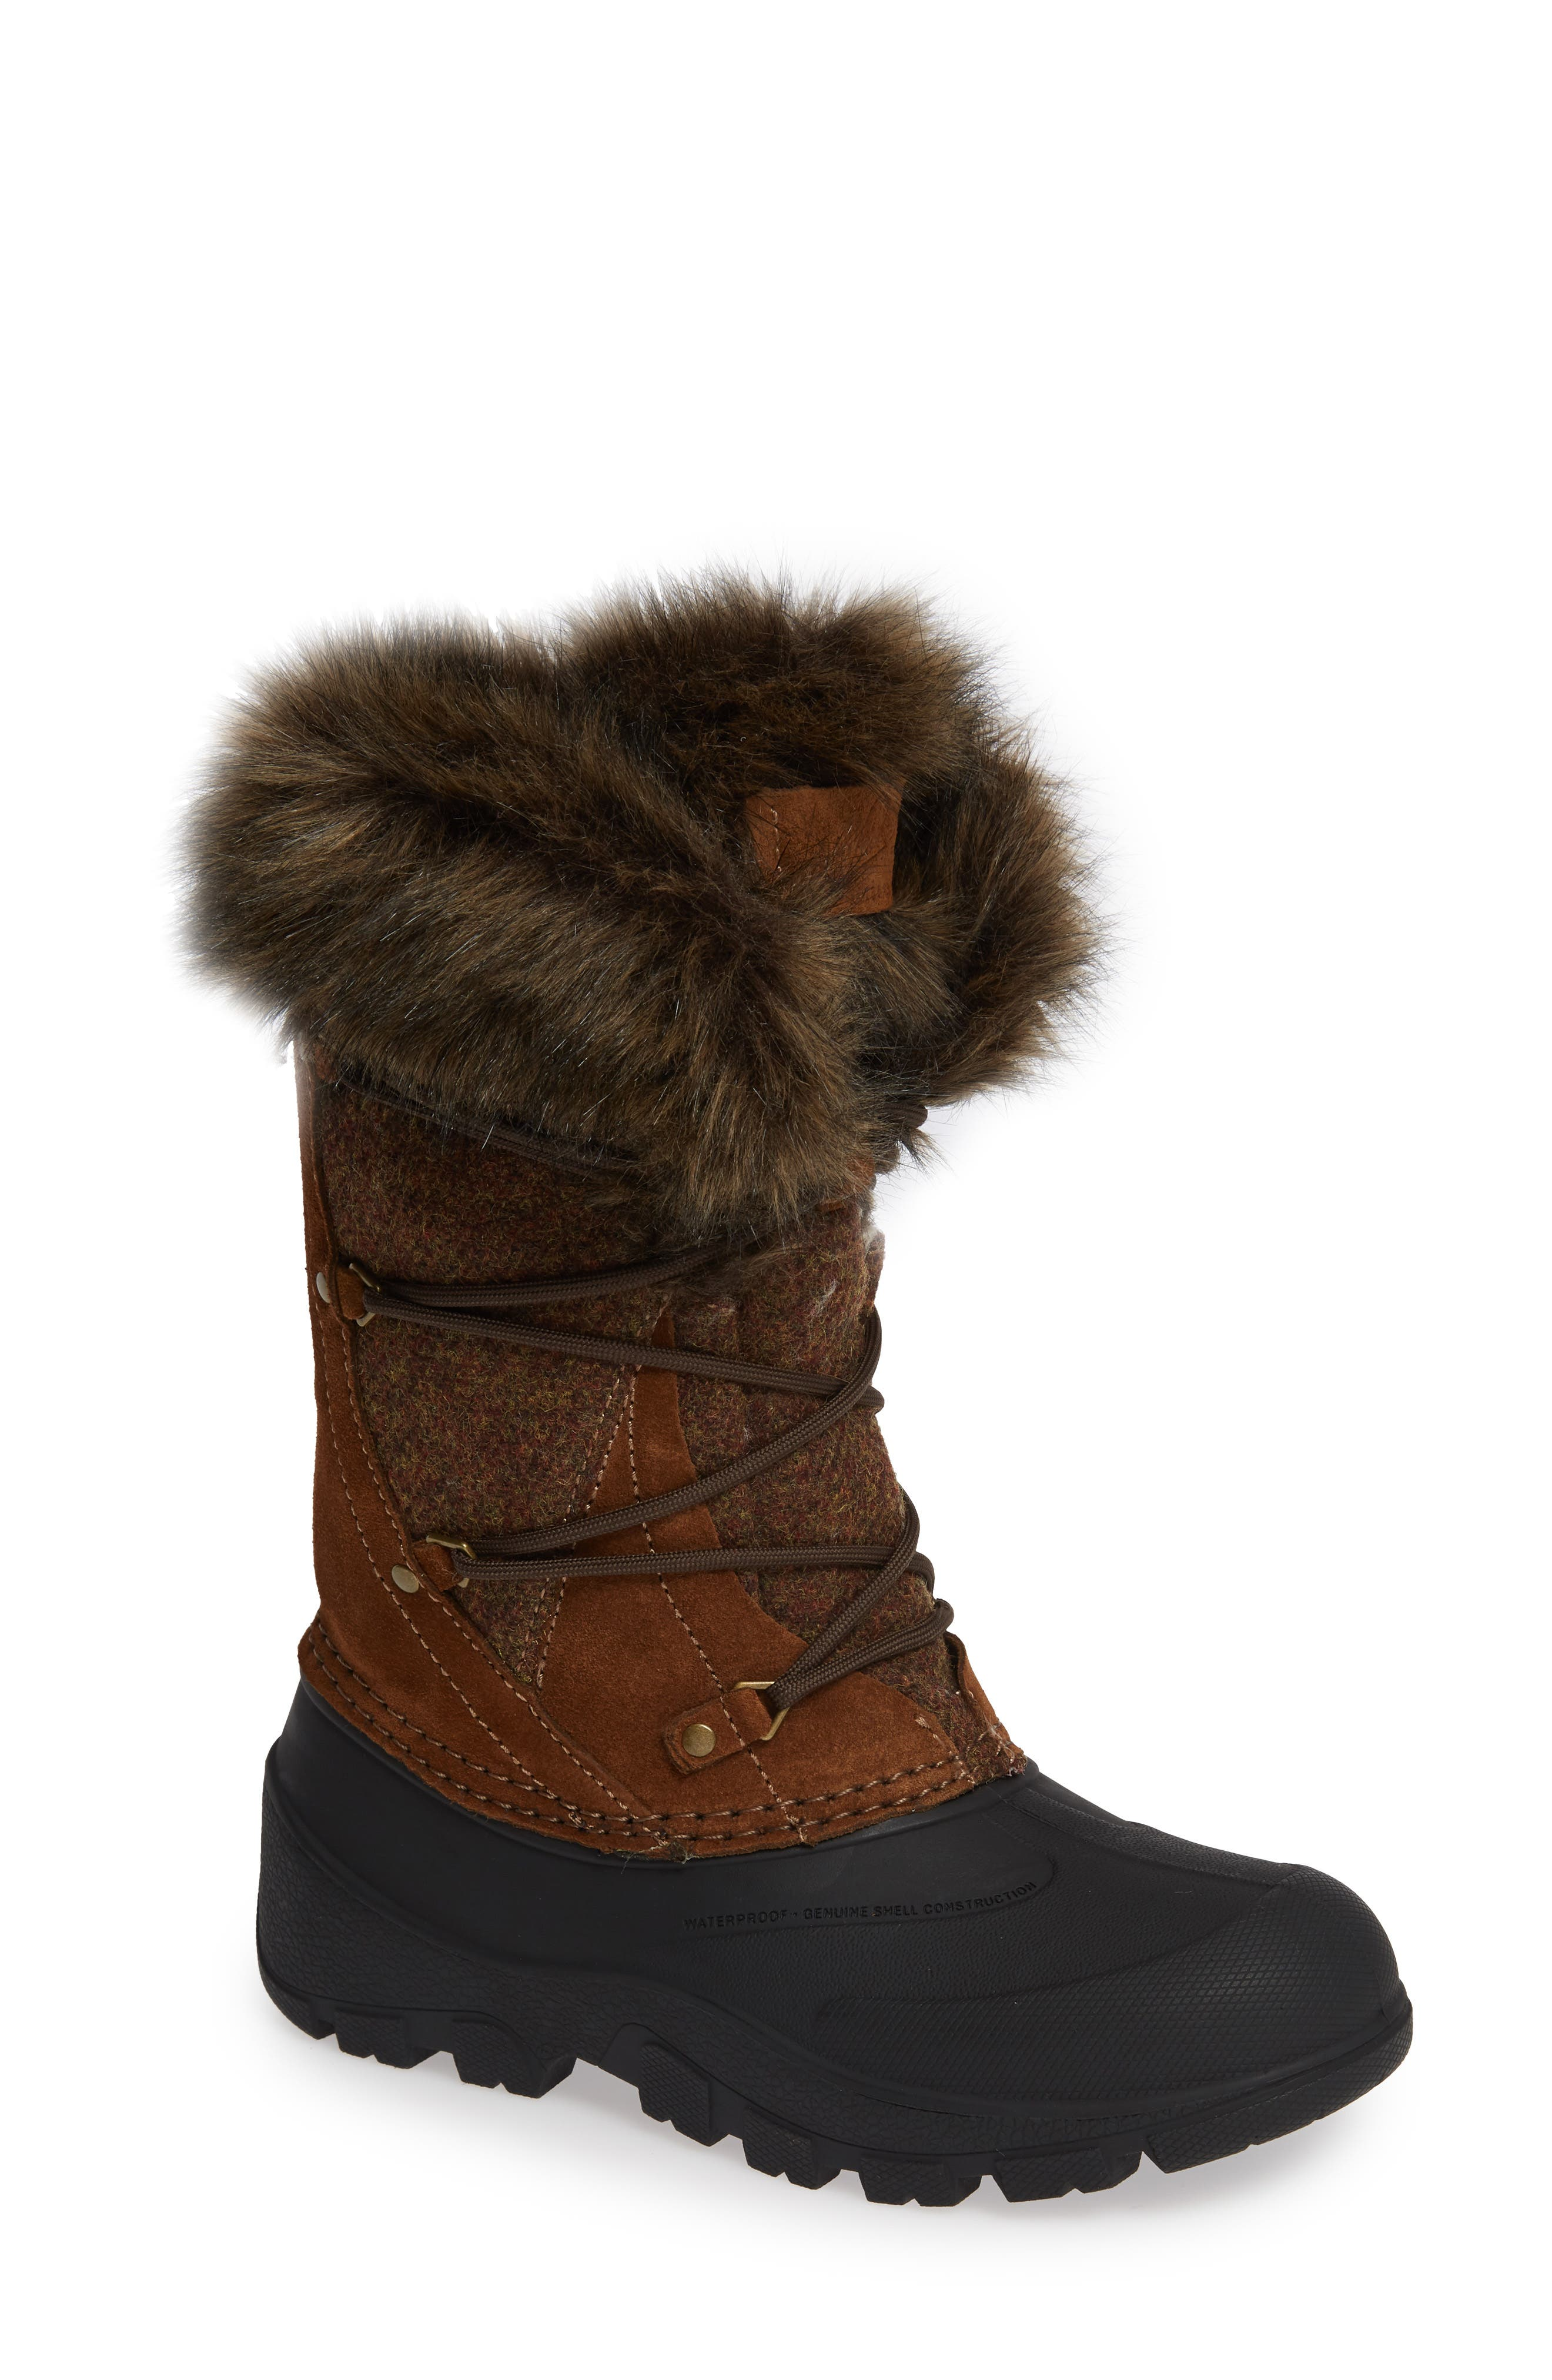 Woolrich Ice Cougar Waterproof Knee High Winter Boot With Faux Fur Trim, Brown